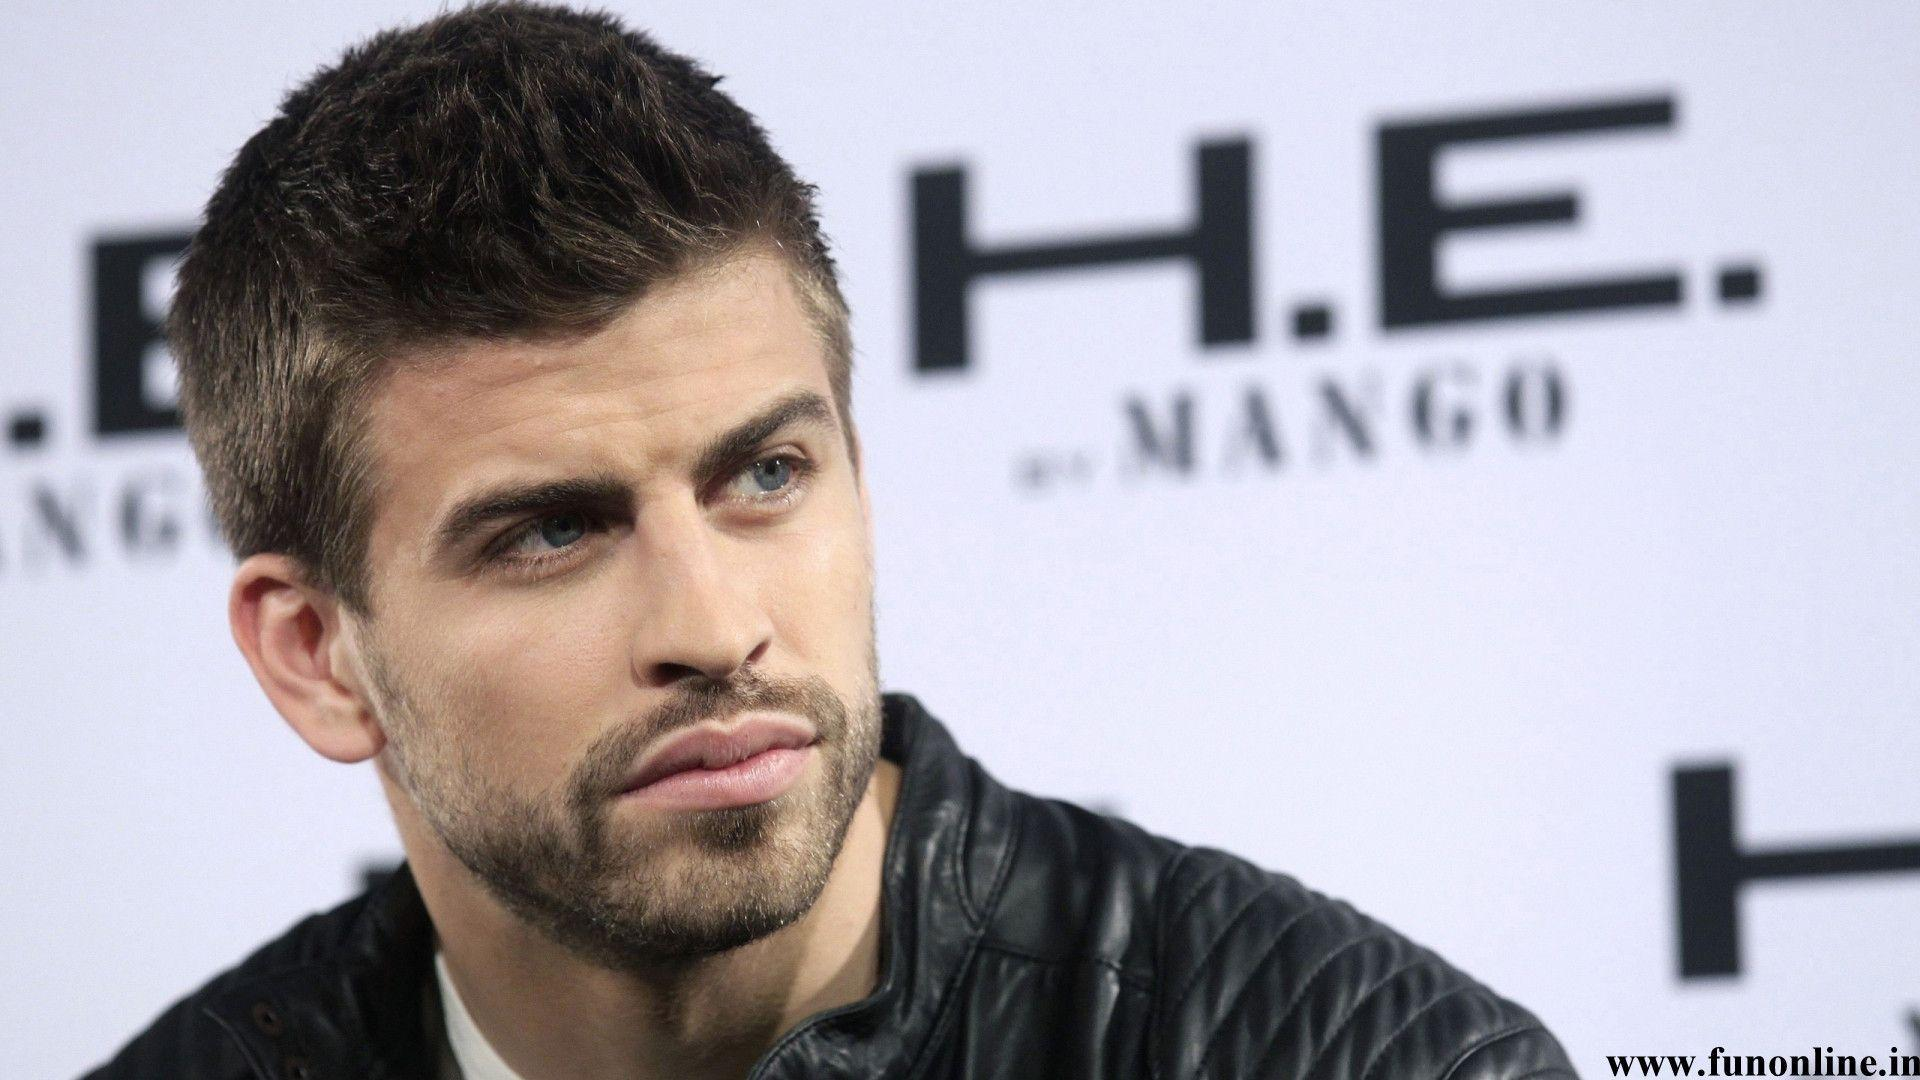 Gerard Pique Wallpapers, Top Defender Gerard Pique HD Wallpapers Free